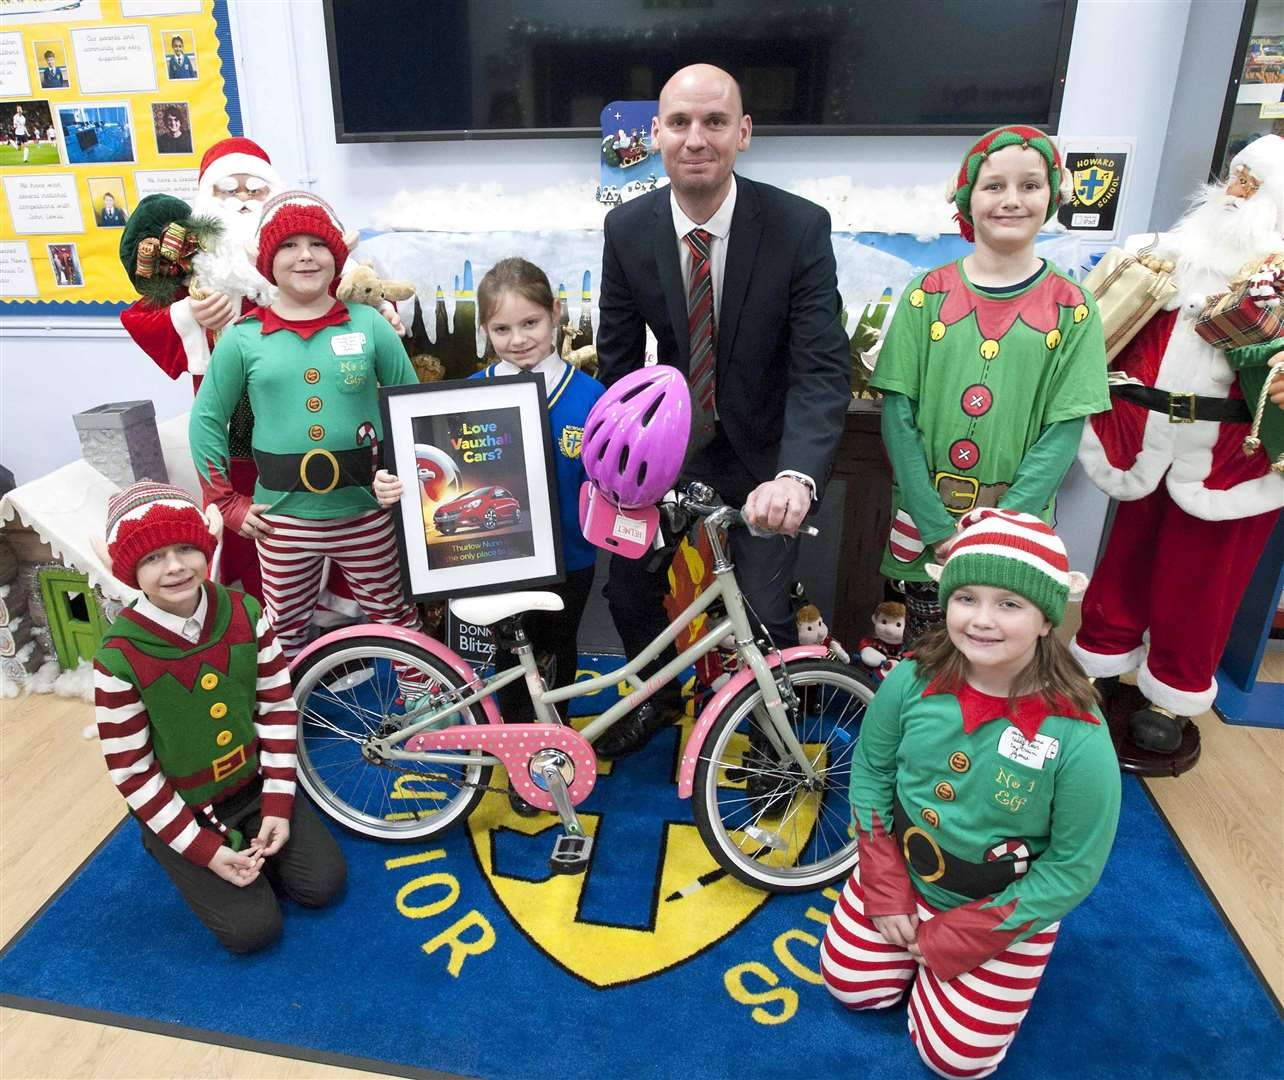 Howard Junior School King's Lynn. Pictured Elf's Zak Williams Katie Williams, Osmon Hastings, Daniel Wilson with pupil Victoria Drozdz, winner of the Vauxhall Poster Design and James Seayer (Vauxhall King's Lynn)